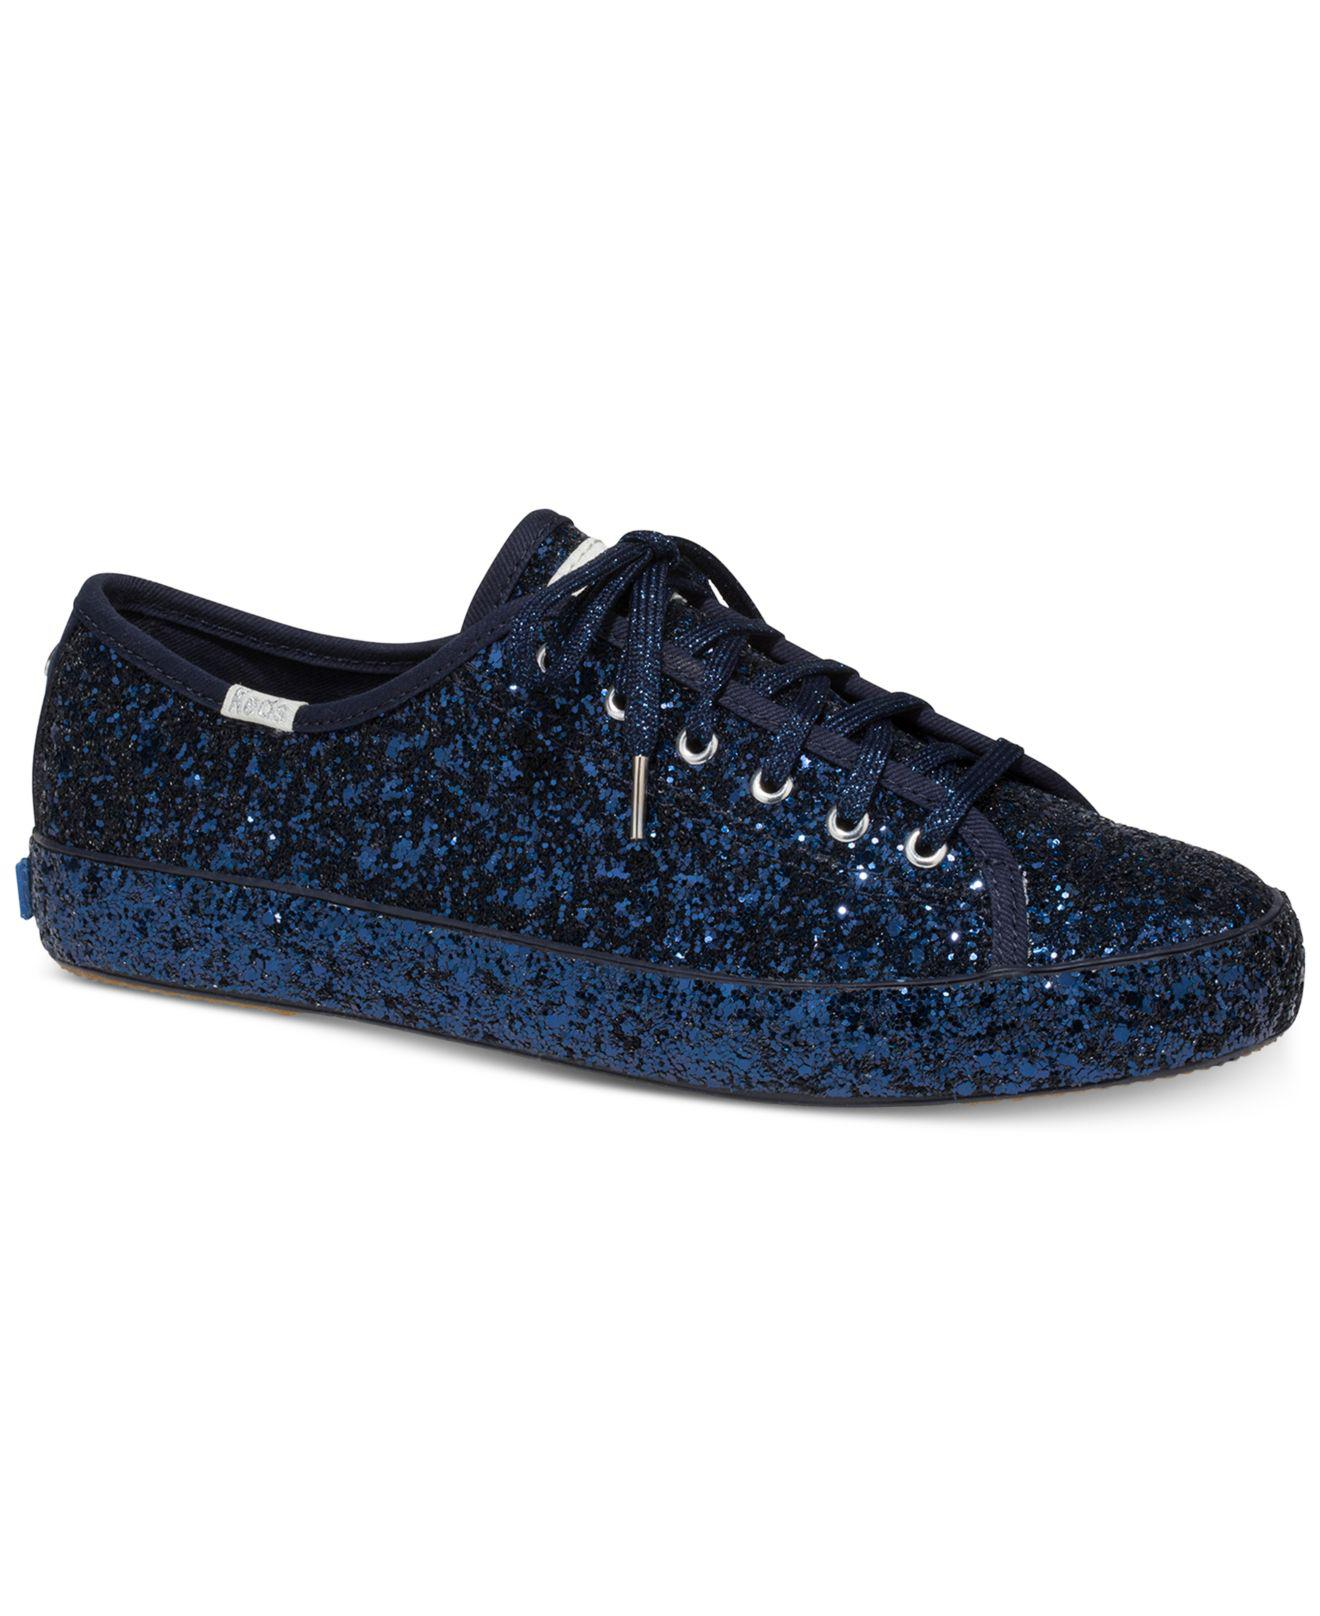 9a9304f004d Lyst - Kate Spade Keds For Kickstart Lace-up Sneakers in Blue - Save 30%